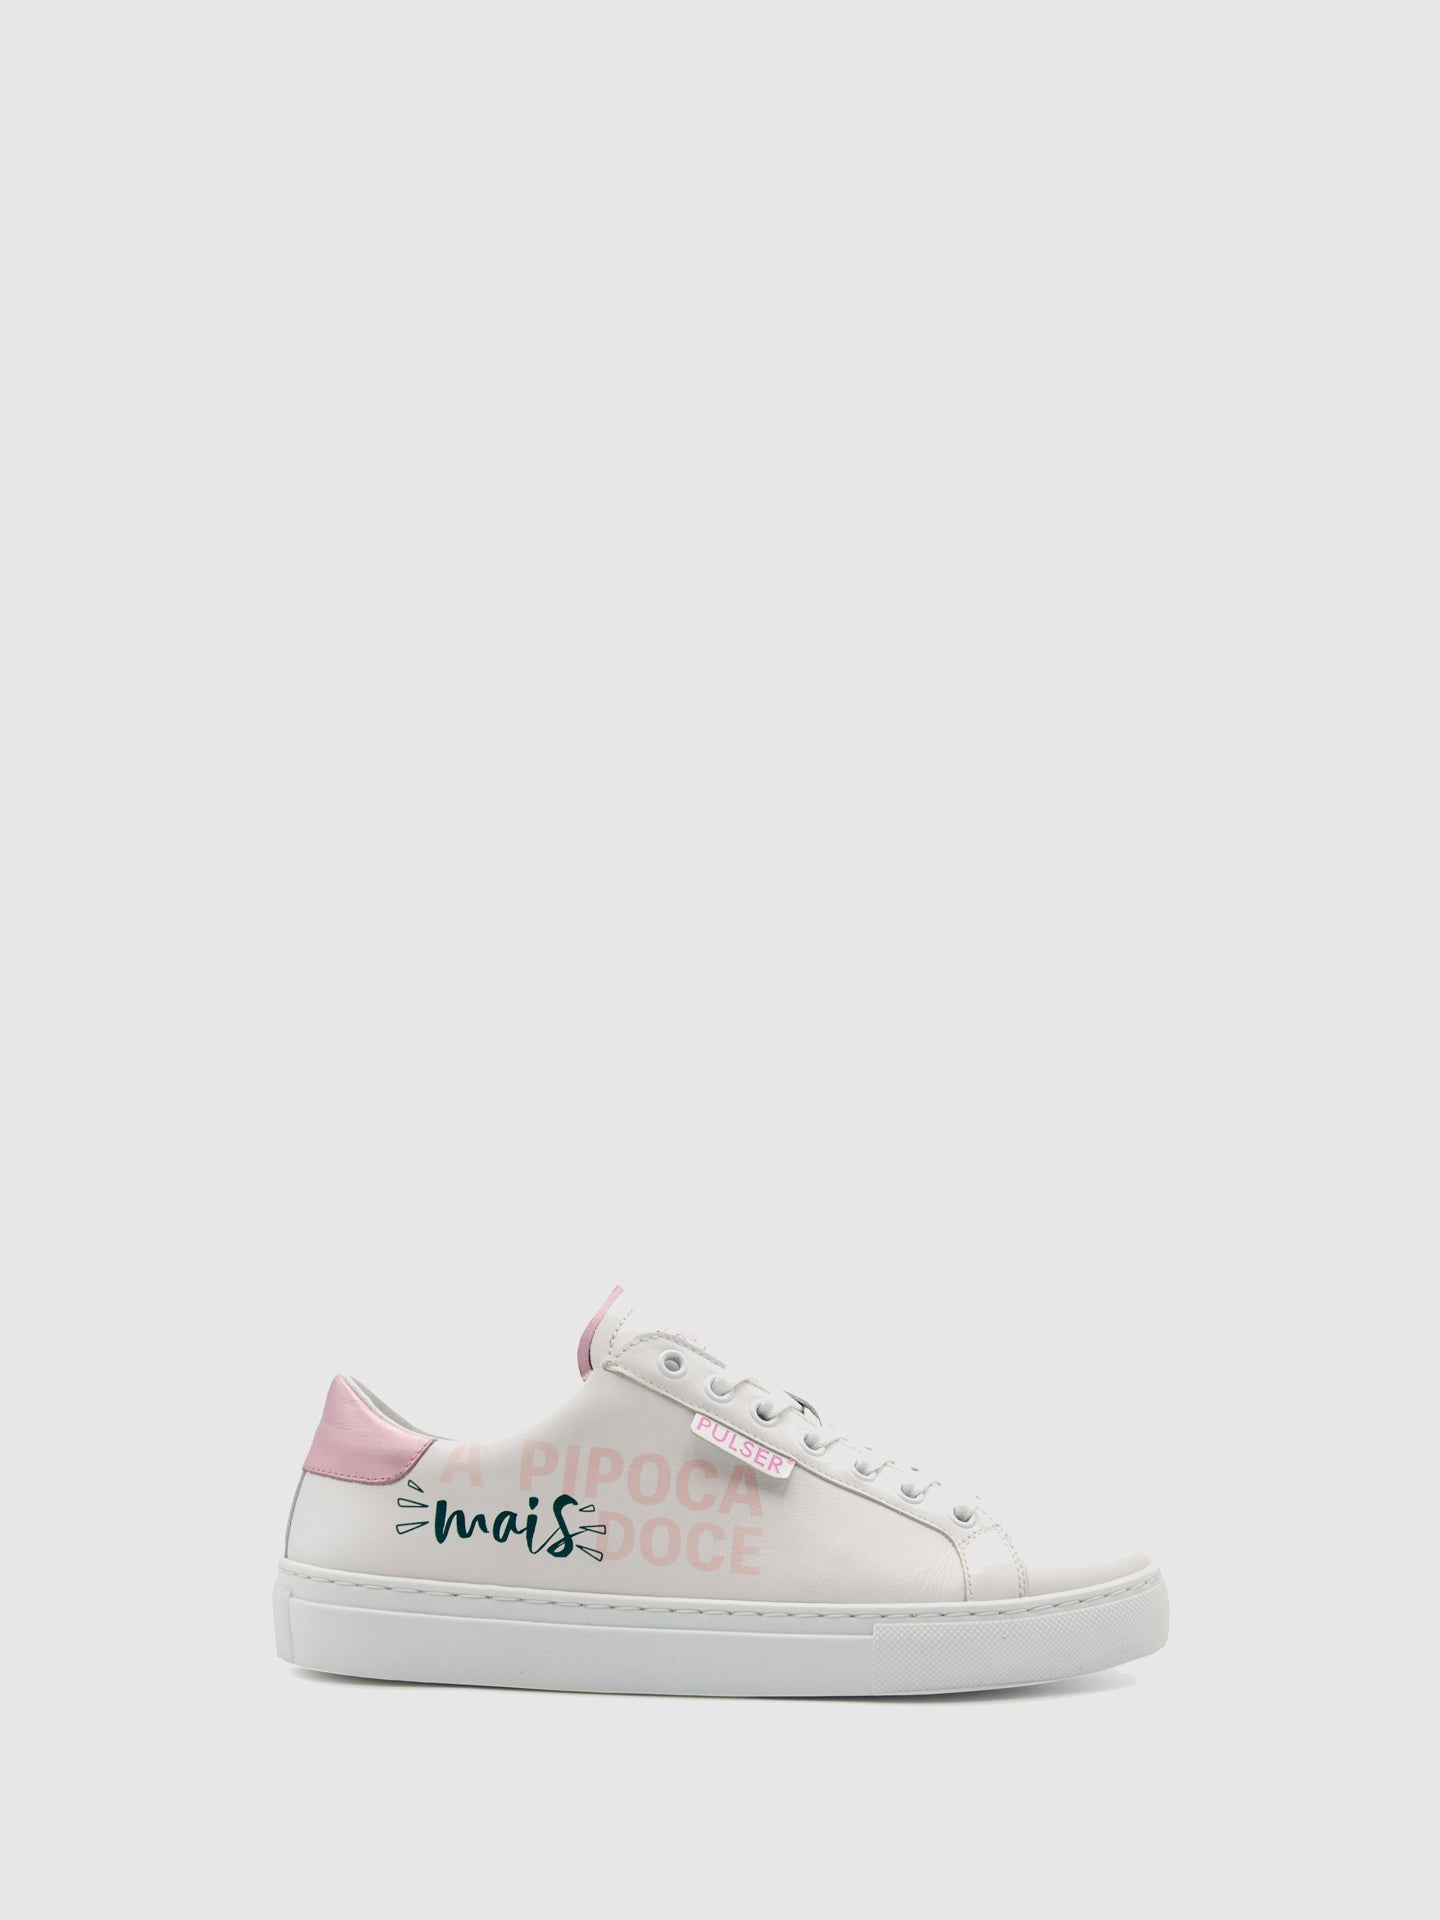 Pulser Shoes Pink White Lace-up Trainers